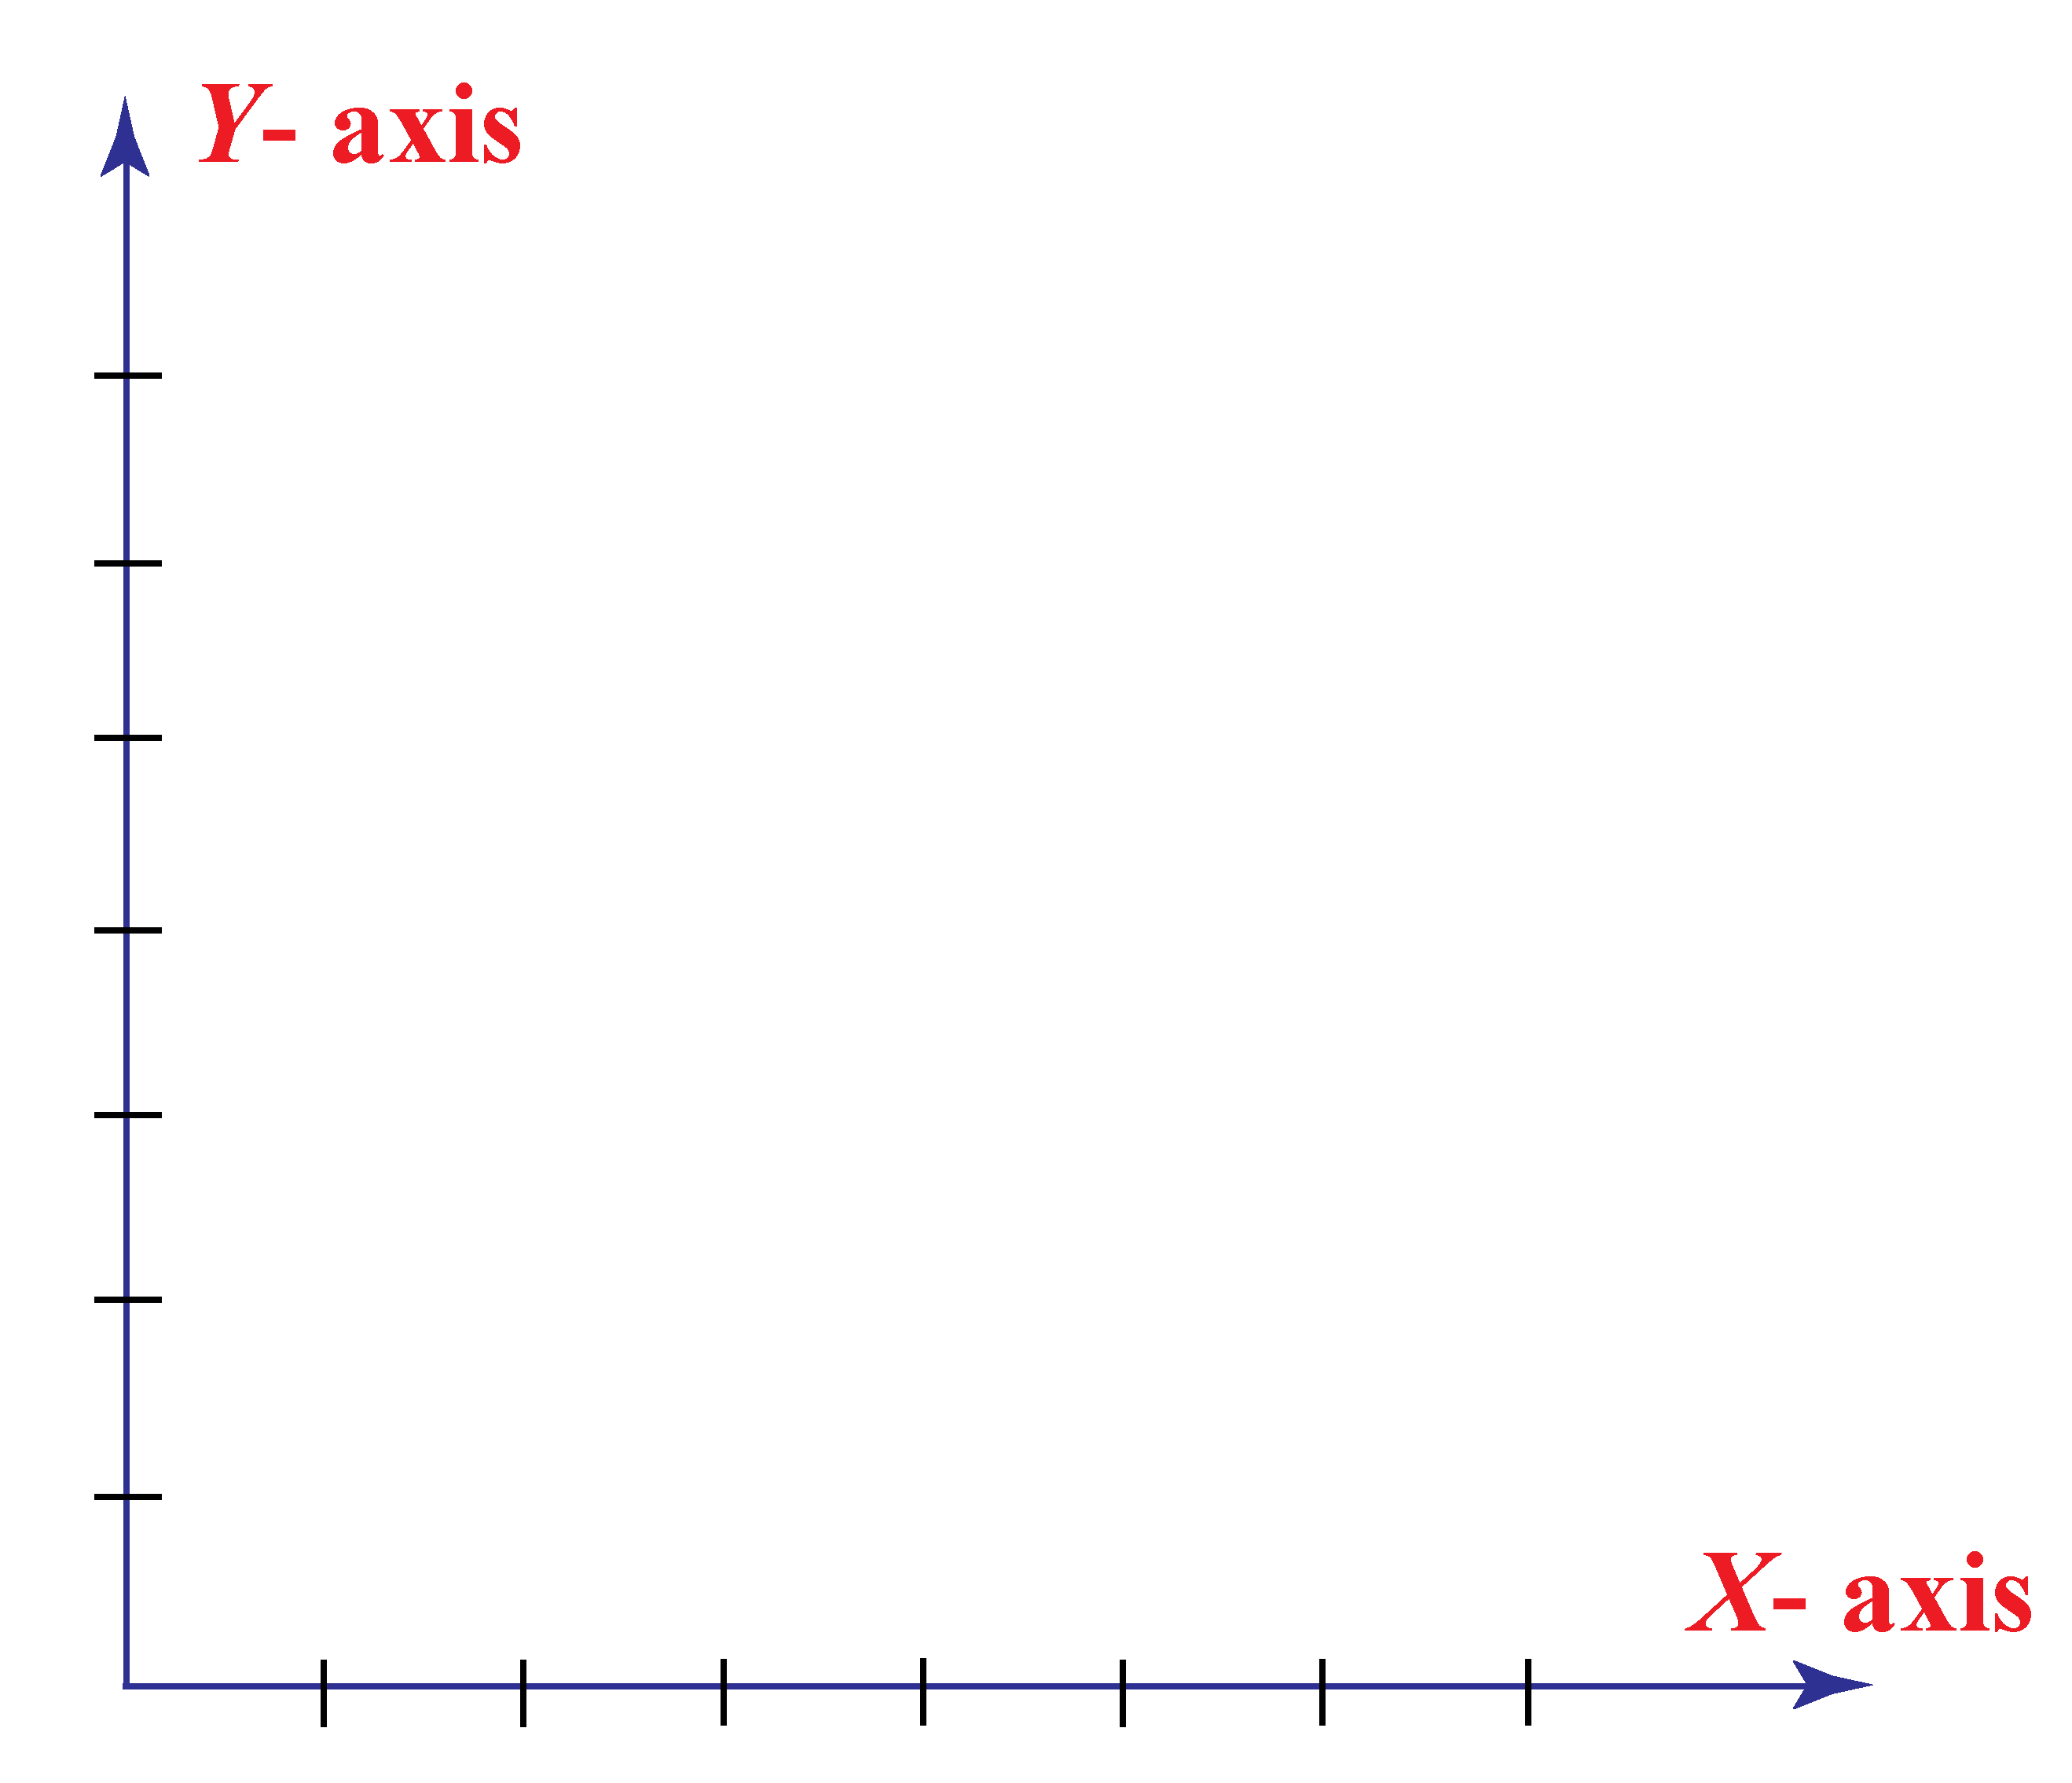 draw a horizontal and a vertical line( i.e. the x-axis and y-axis ).